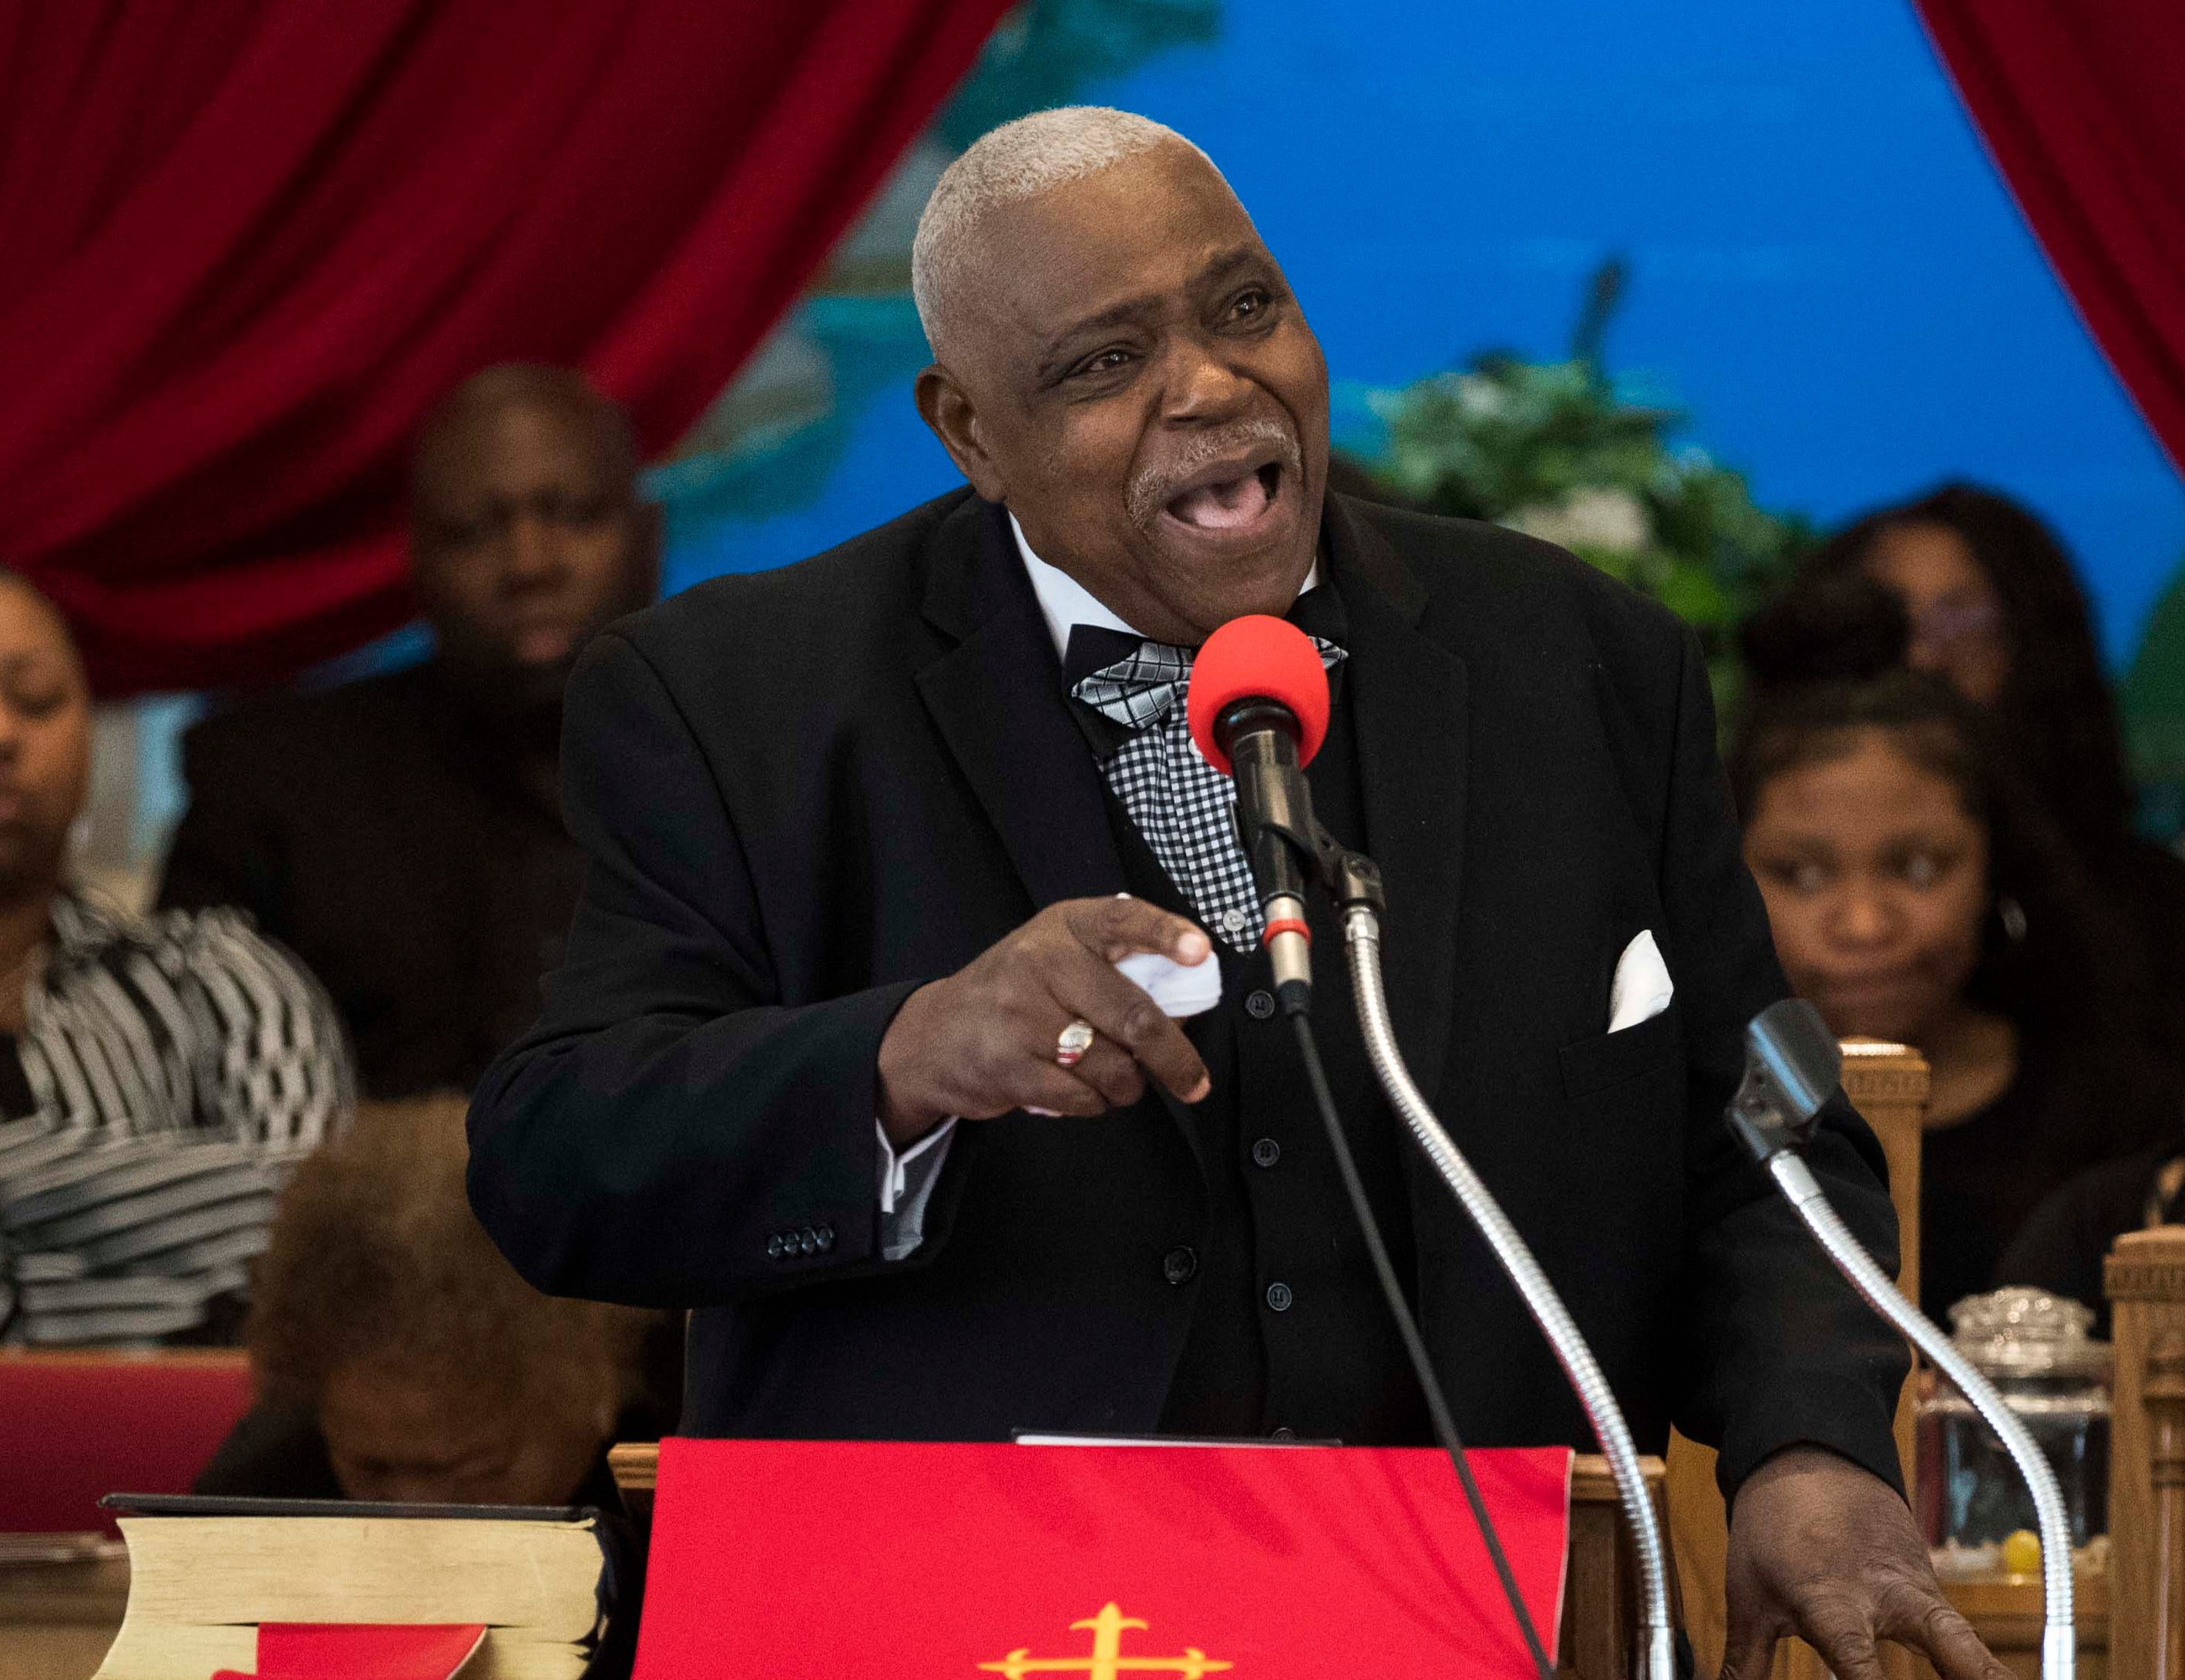 Pastor William A. Caldwell, Jr. gives the eulogy at the funeral of Alfred Williams at Mt. Sinai Baptist Church in Clinton, Saturday, March 23, 2019. Williams was one of the Clinton 12, who were the first students to desegregate Clinton High School in 1956.